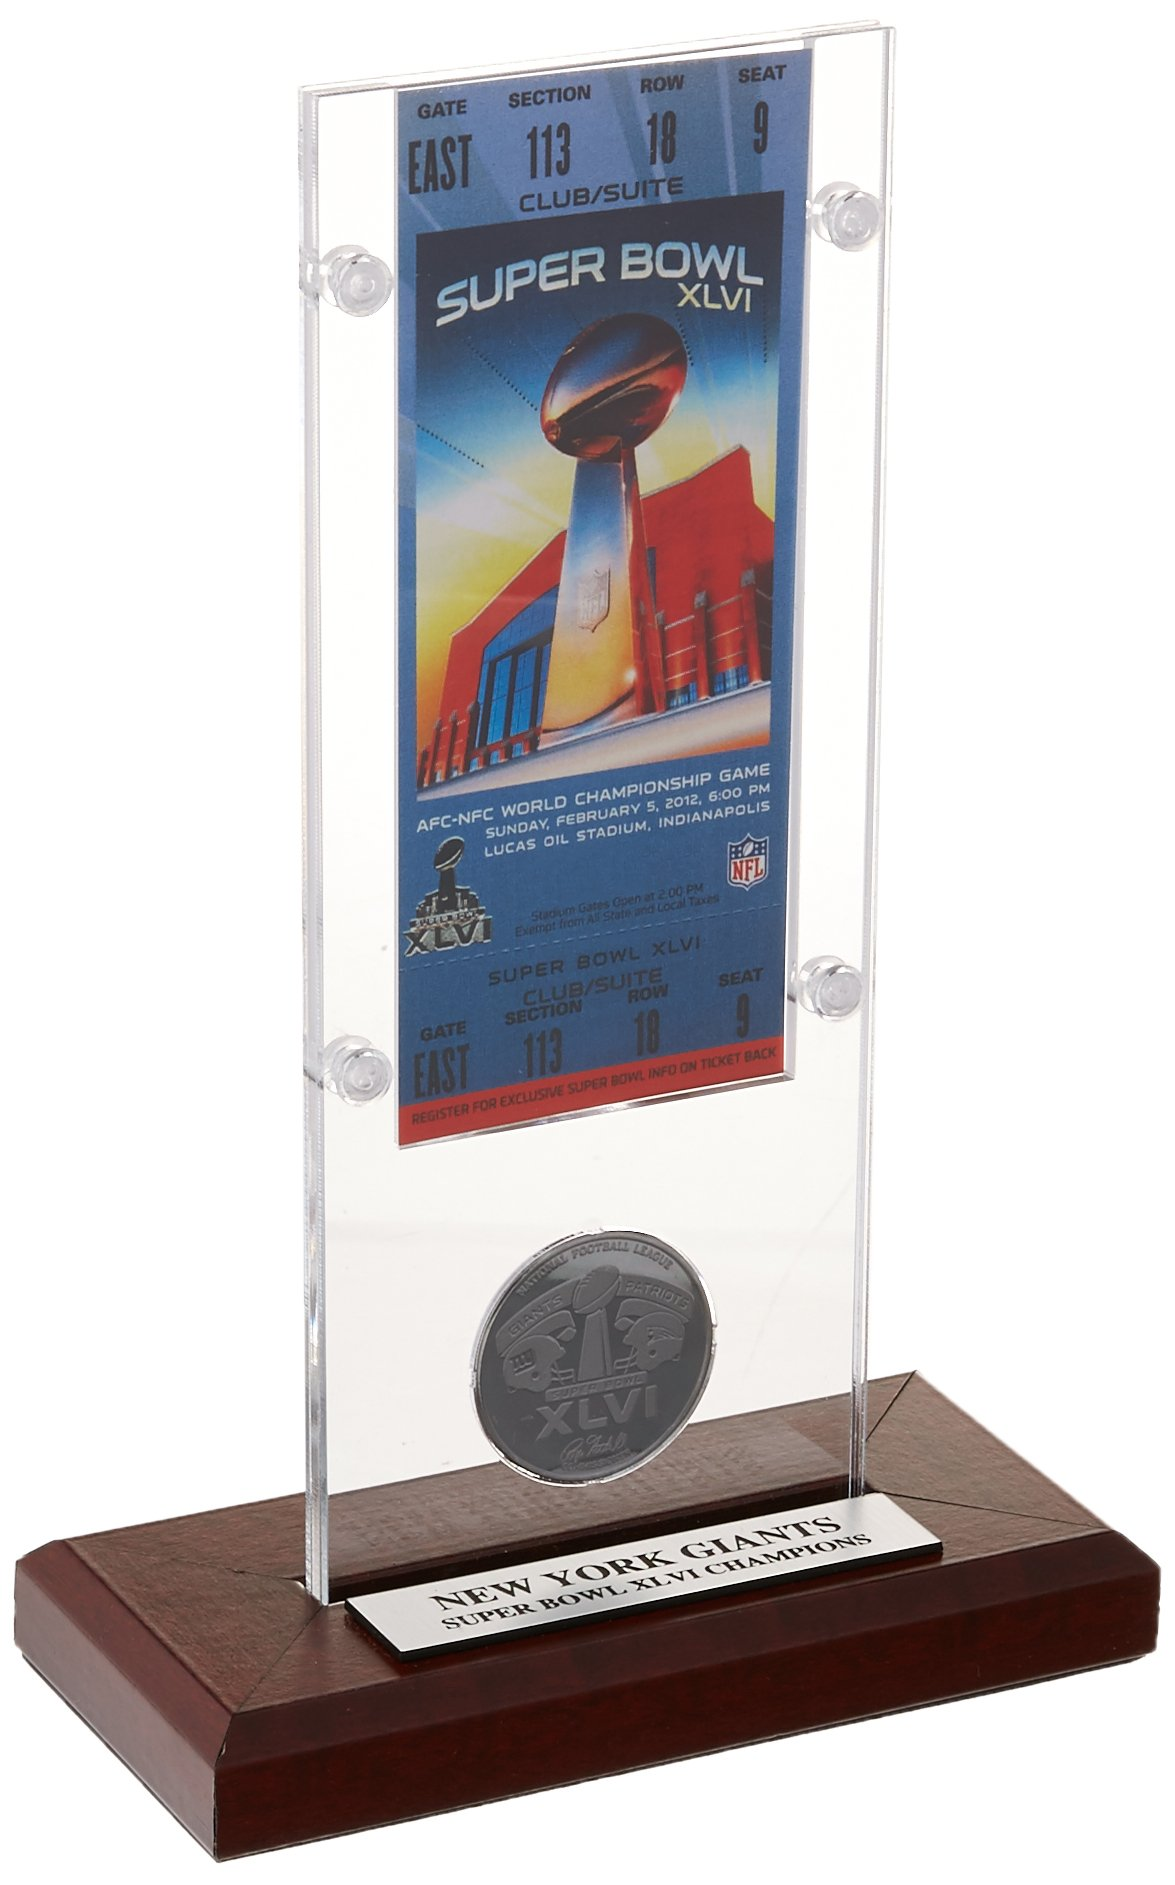 NFL New York Giants Super Bowl 46 Ticket & Game Coin Collection, 12'' x 2'' x 5'', Black